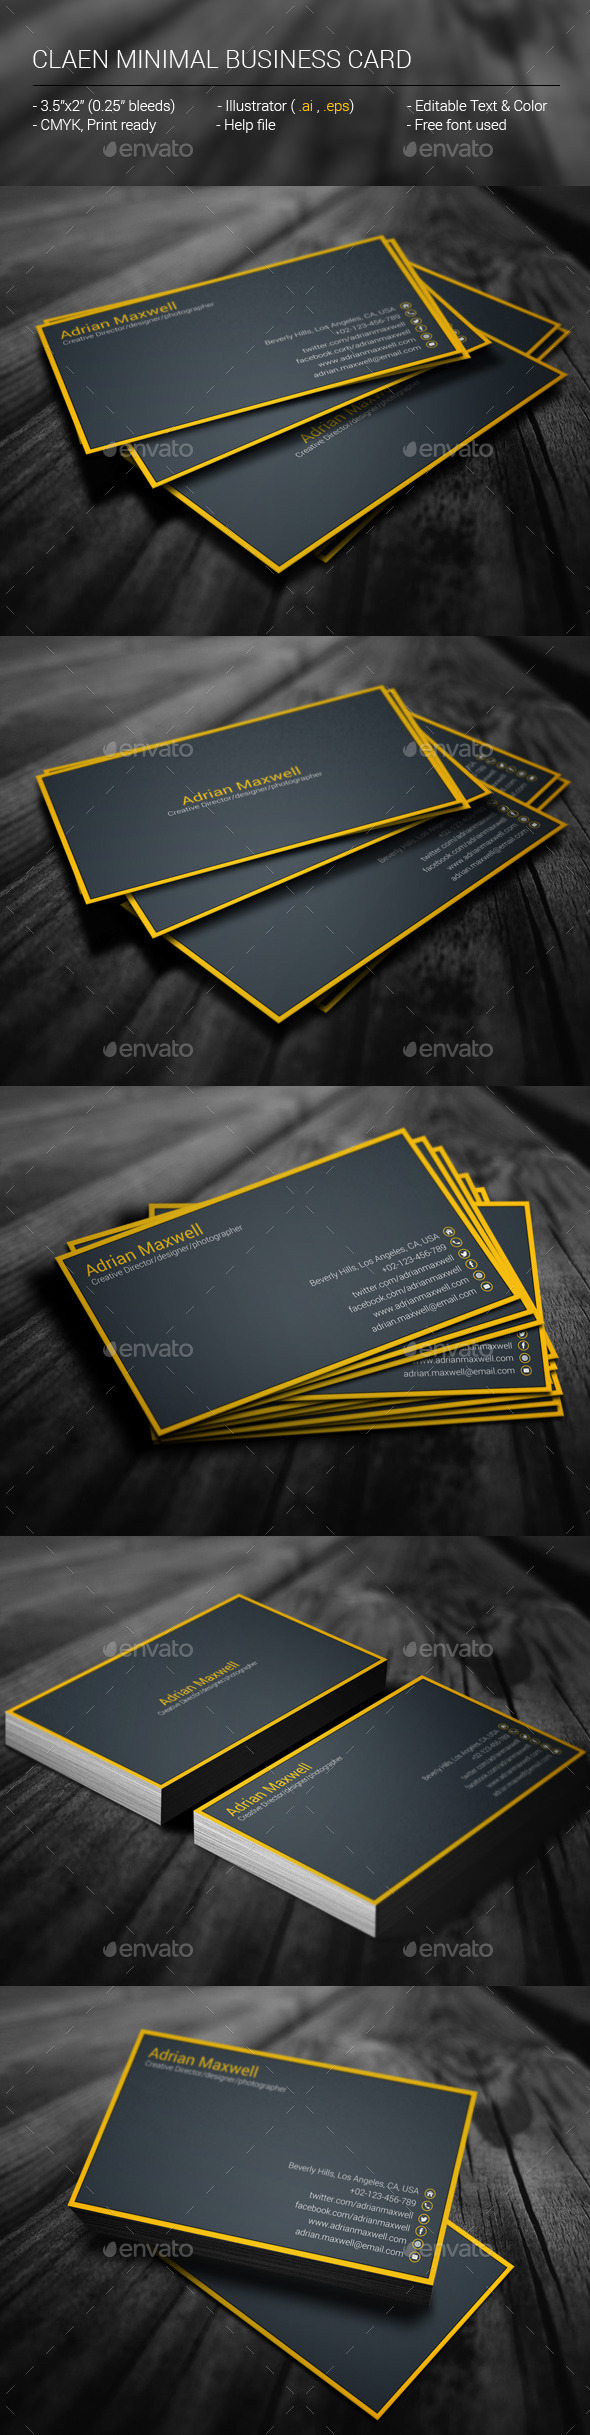 GraphicRiver Clean Minimal Business Card 11252300